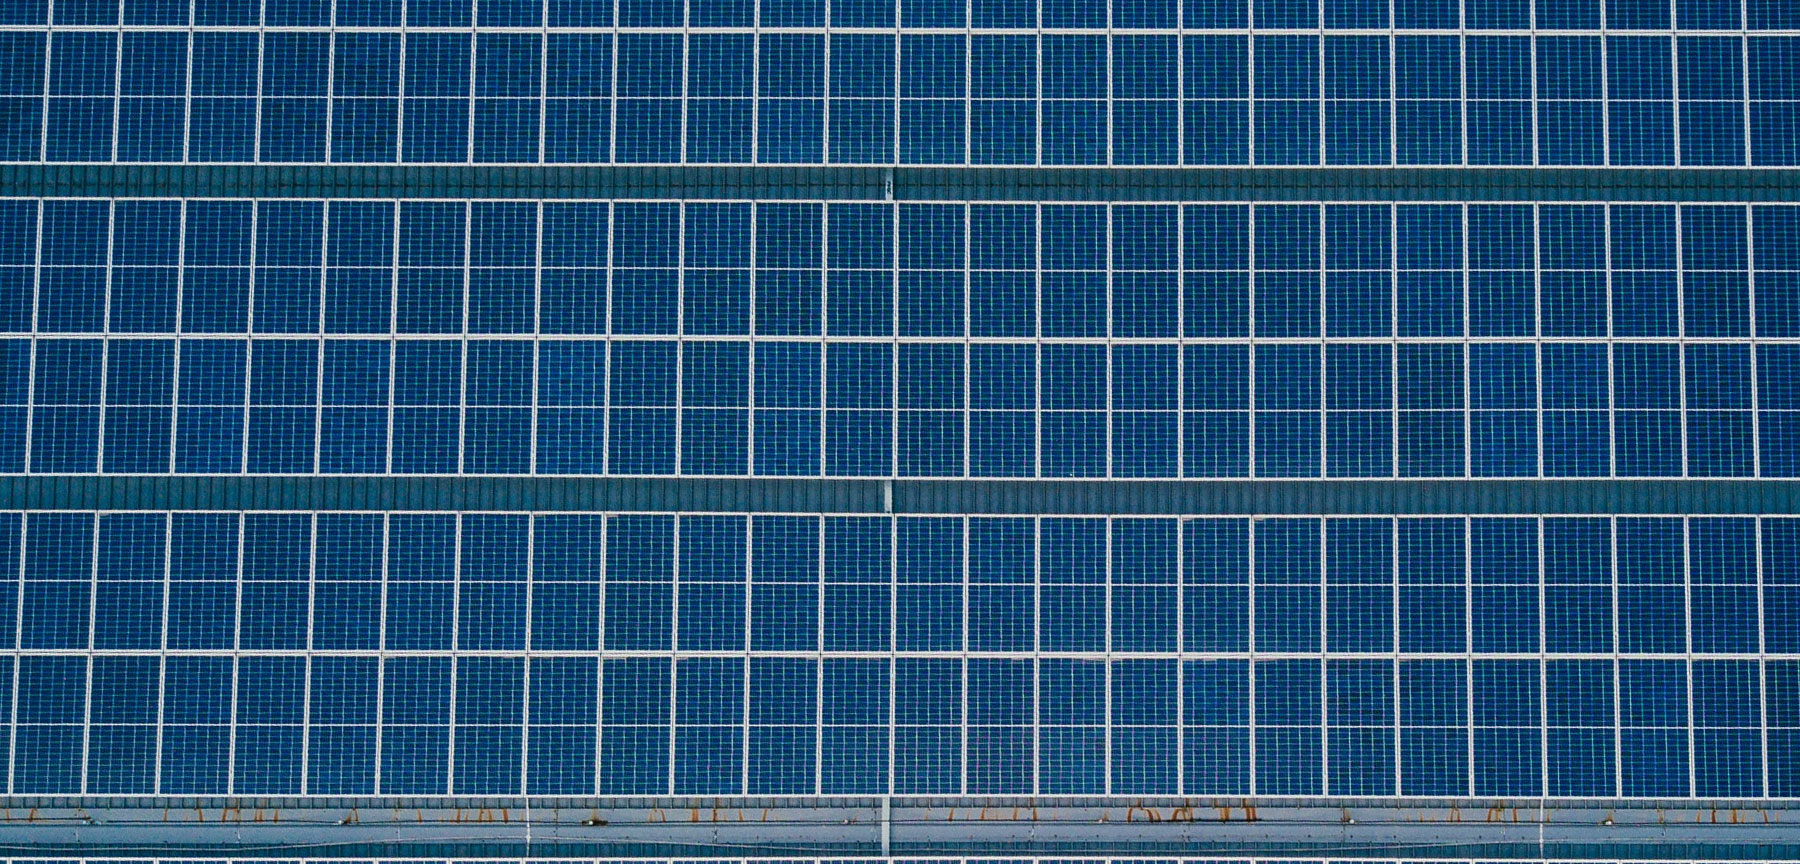 Leasing Your Commercial Property for Solar: Should You Do It?